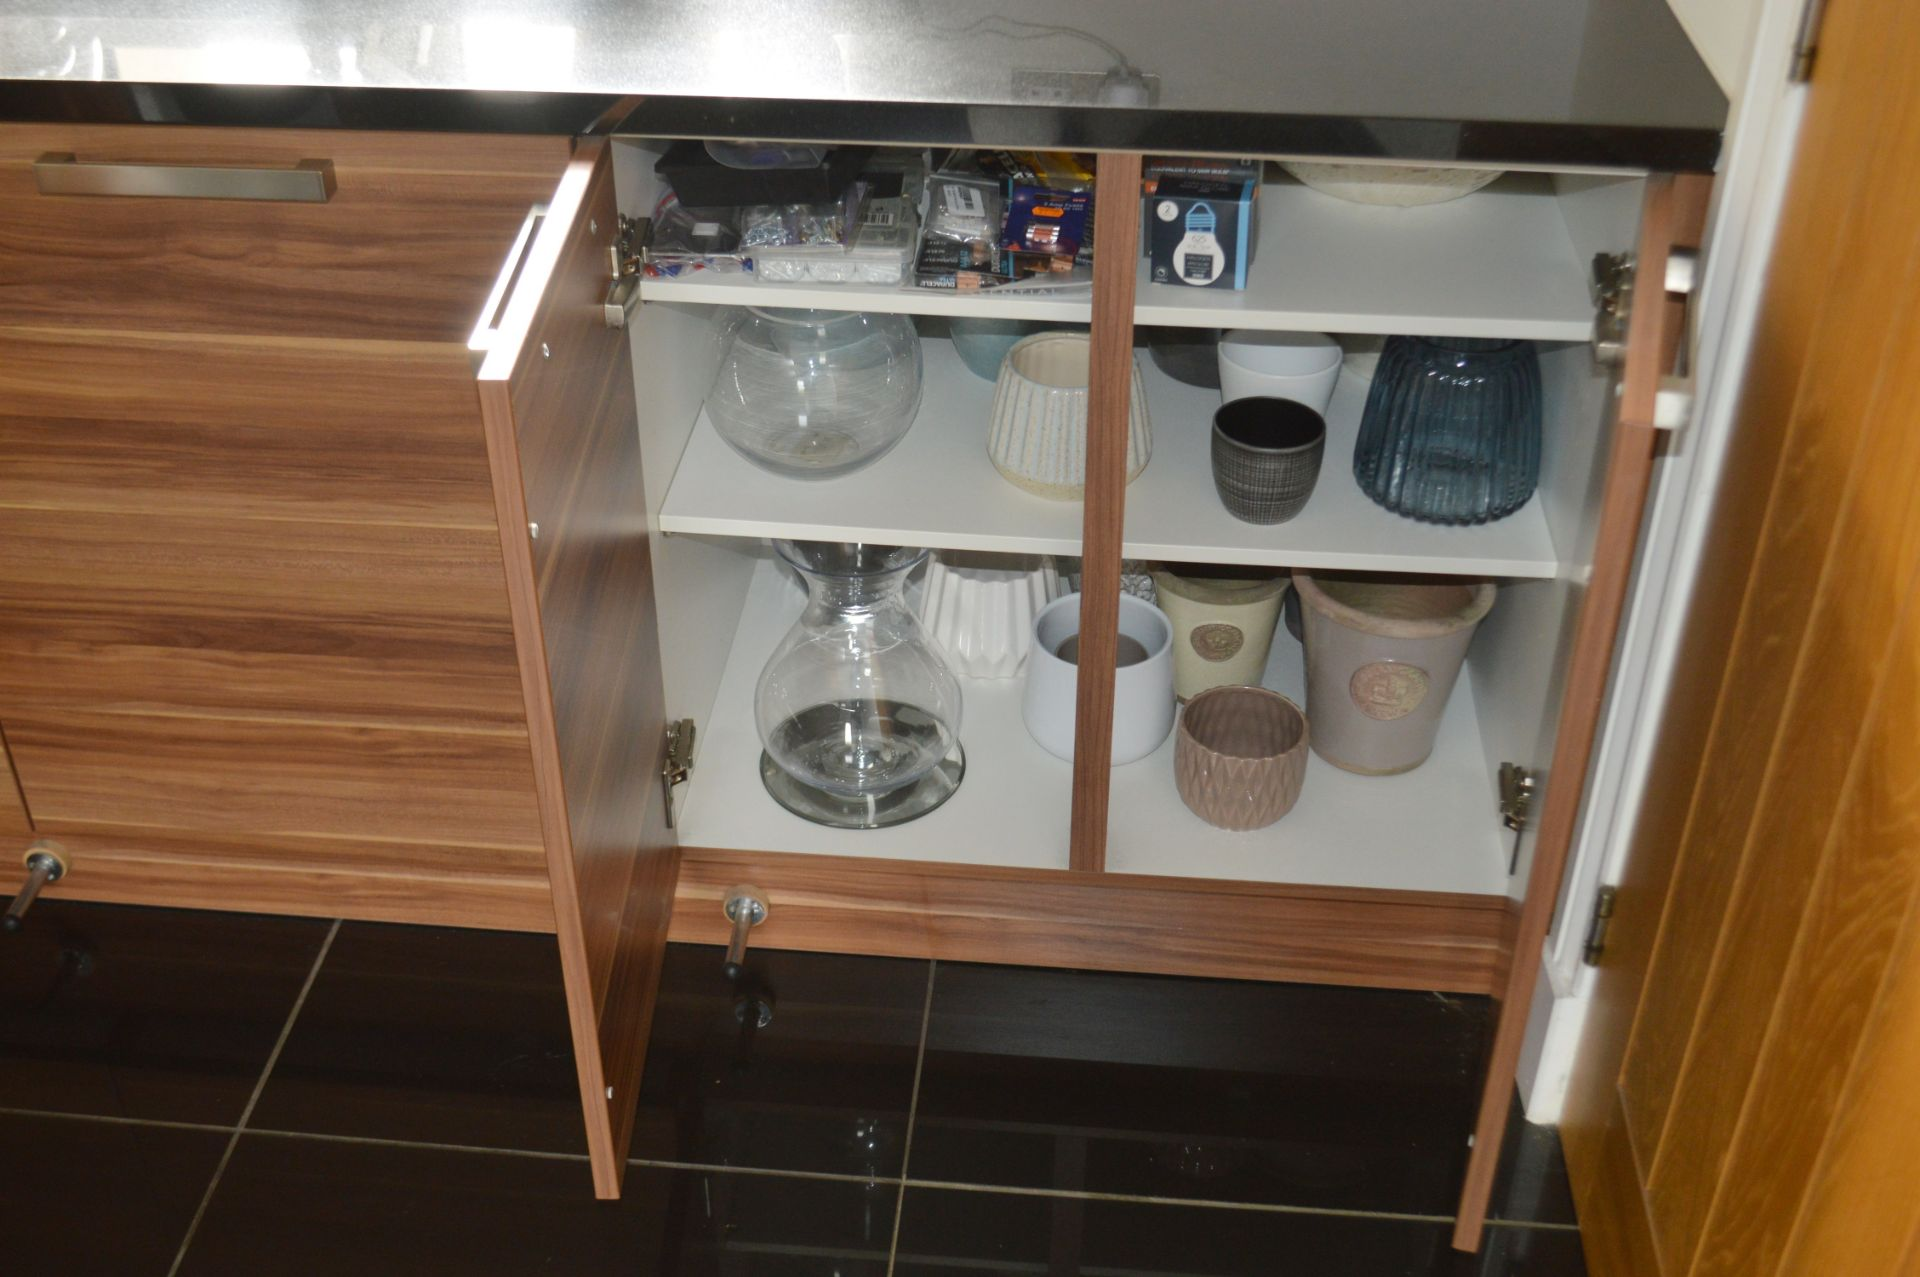 1 x Contemporary Bespoke Fitted Kitchen With Integrated Neff Branded Appliances, Quartz Worktops - Image 20 of 52